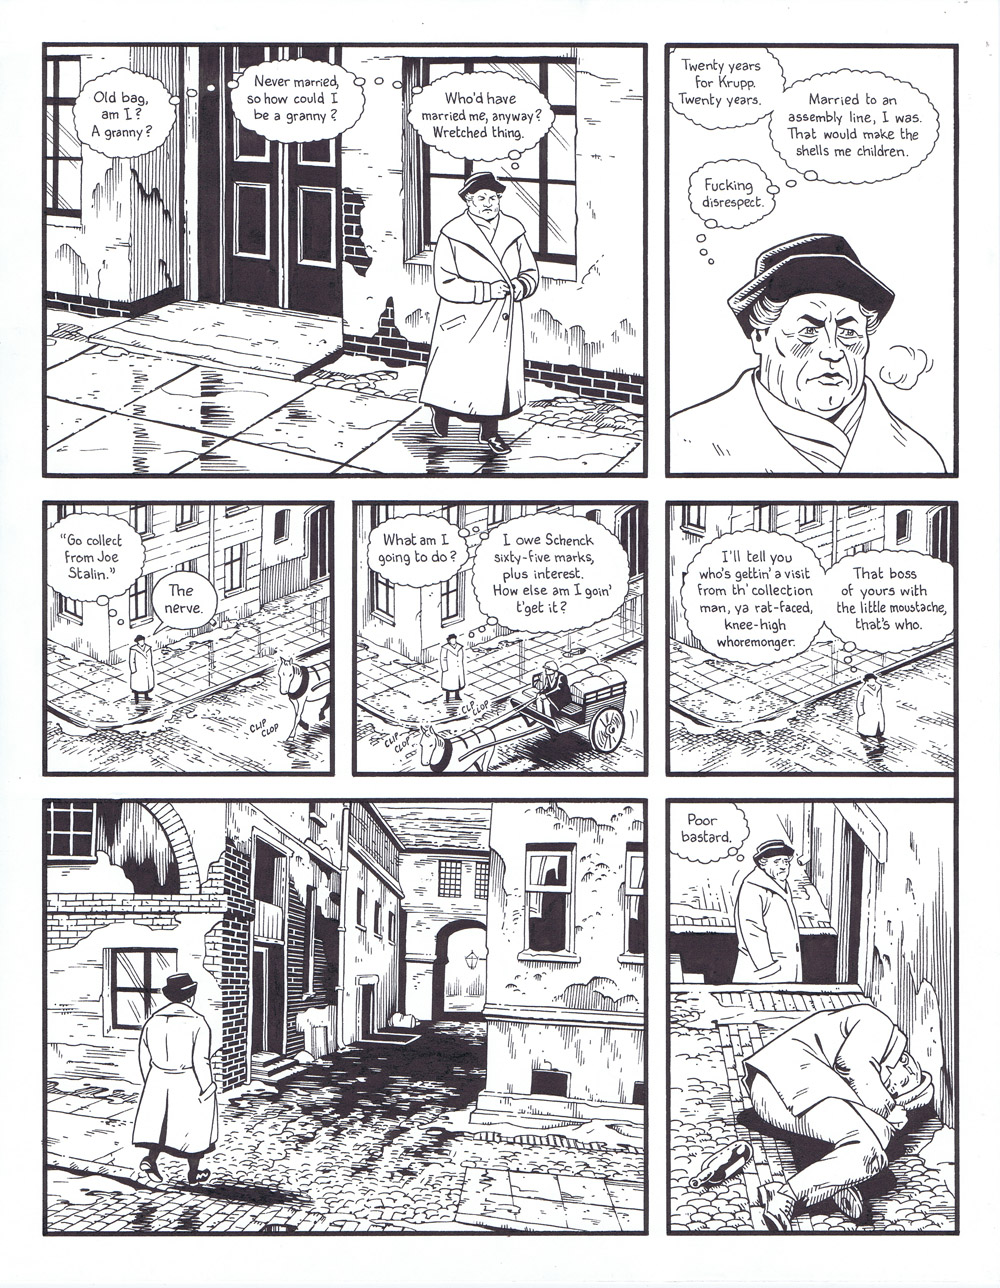 Berlin: Book 2 - page 138